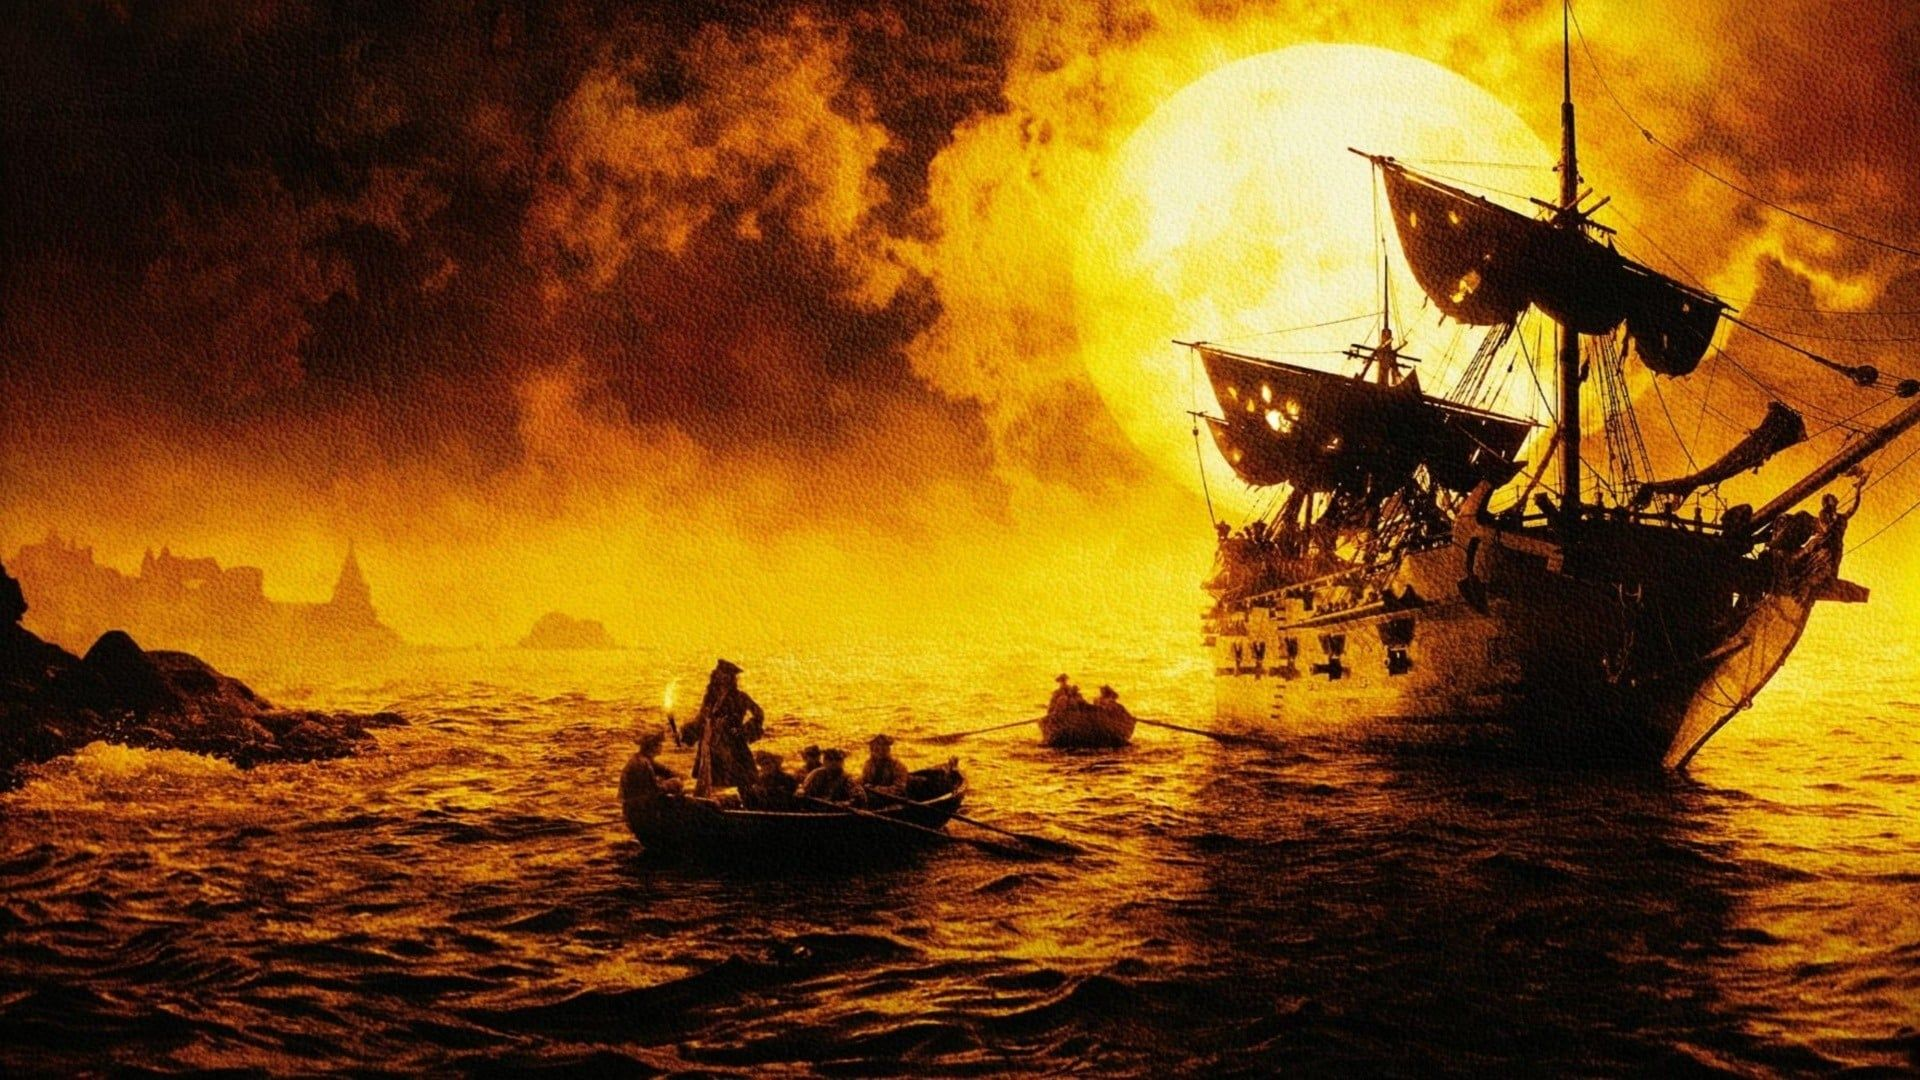 Pirates Of The Caribbean The Curse Of The Black Pearl Desktop